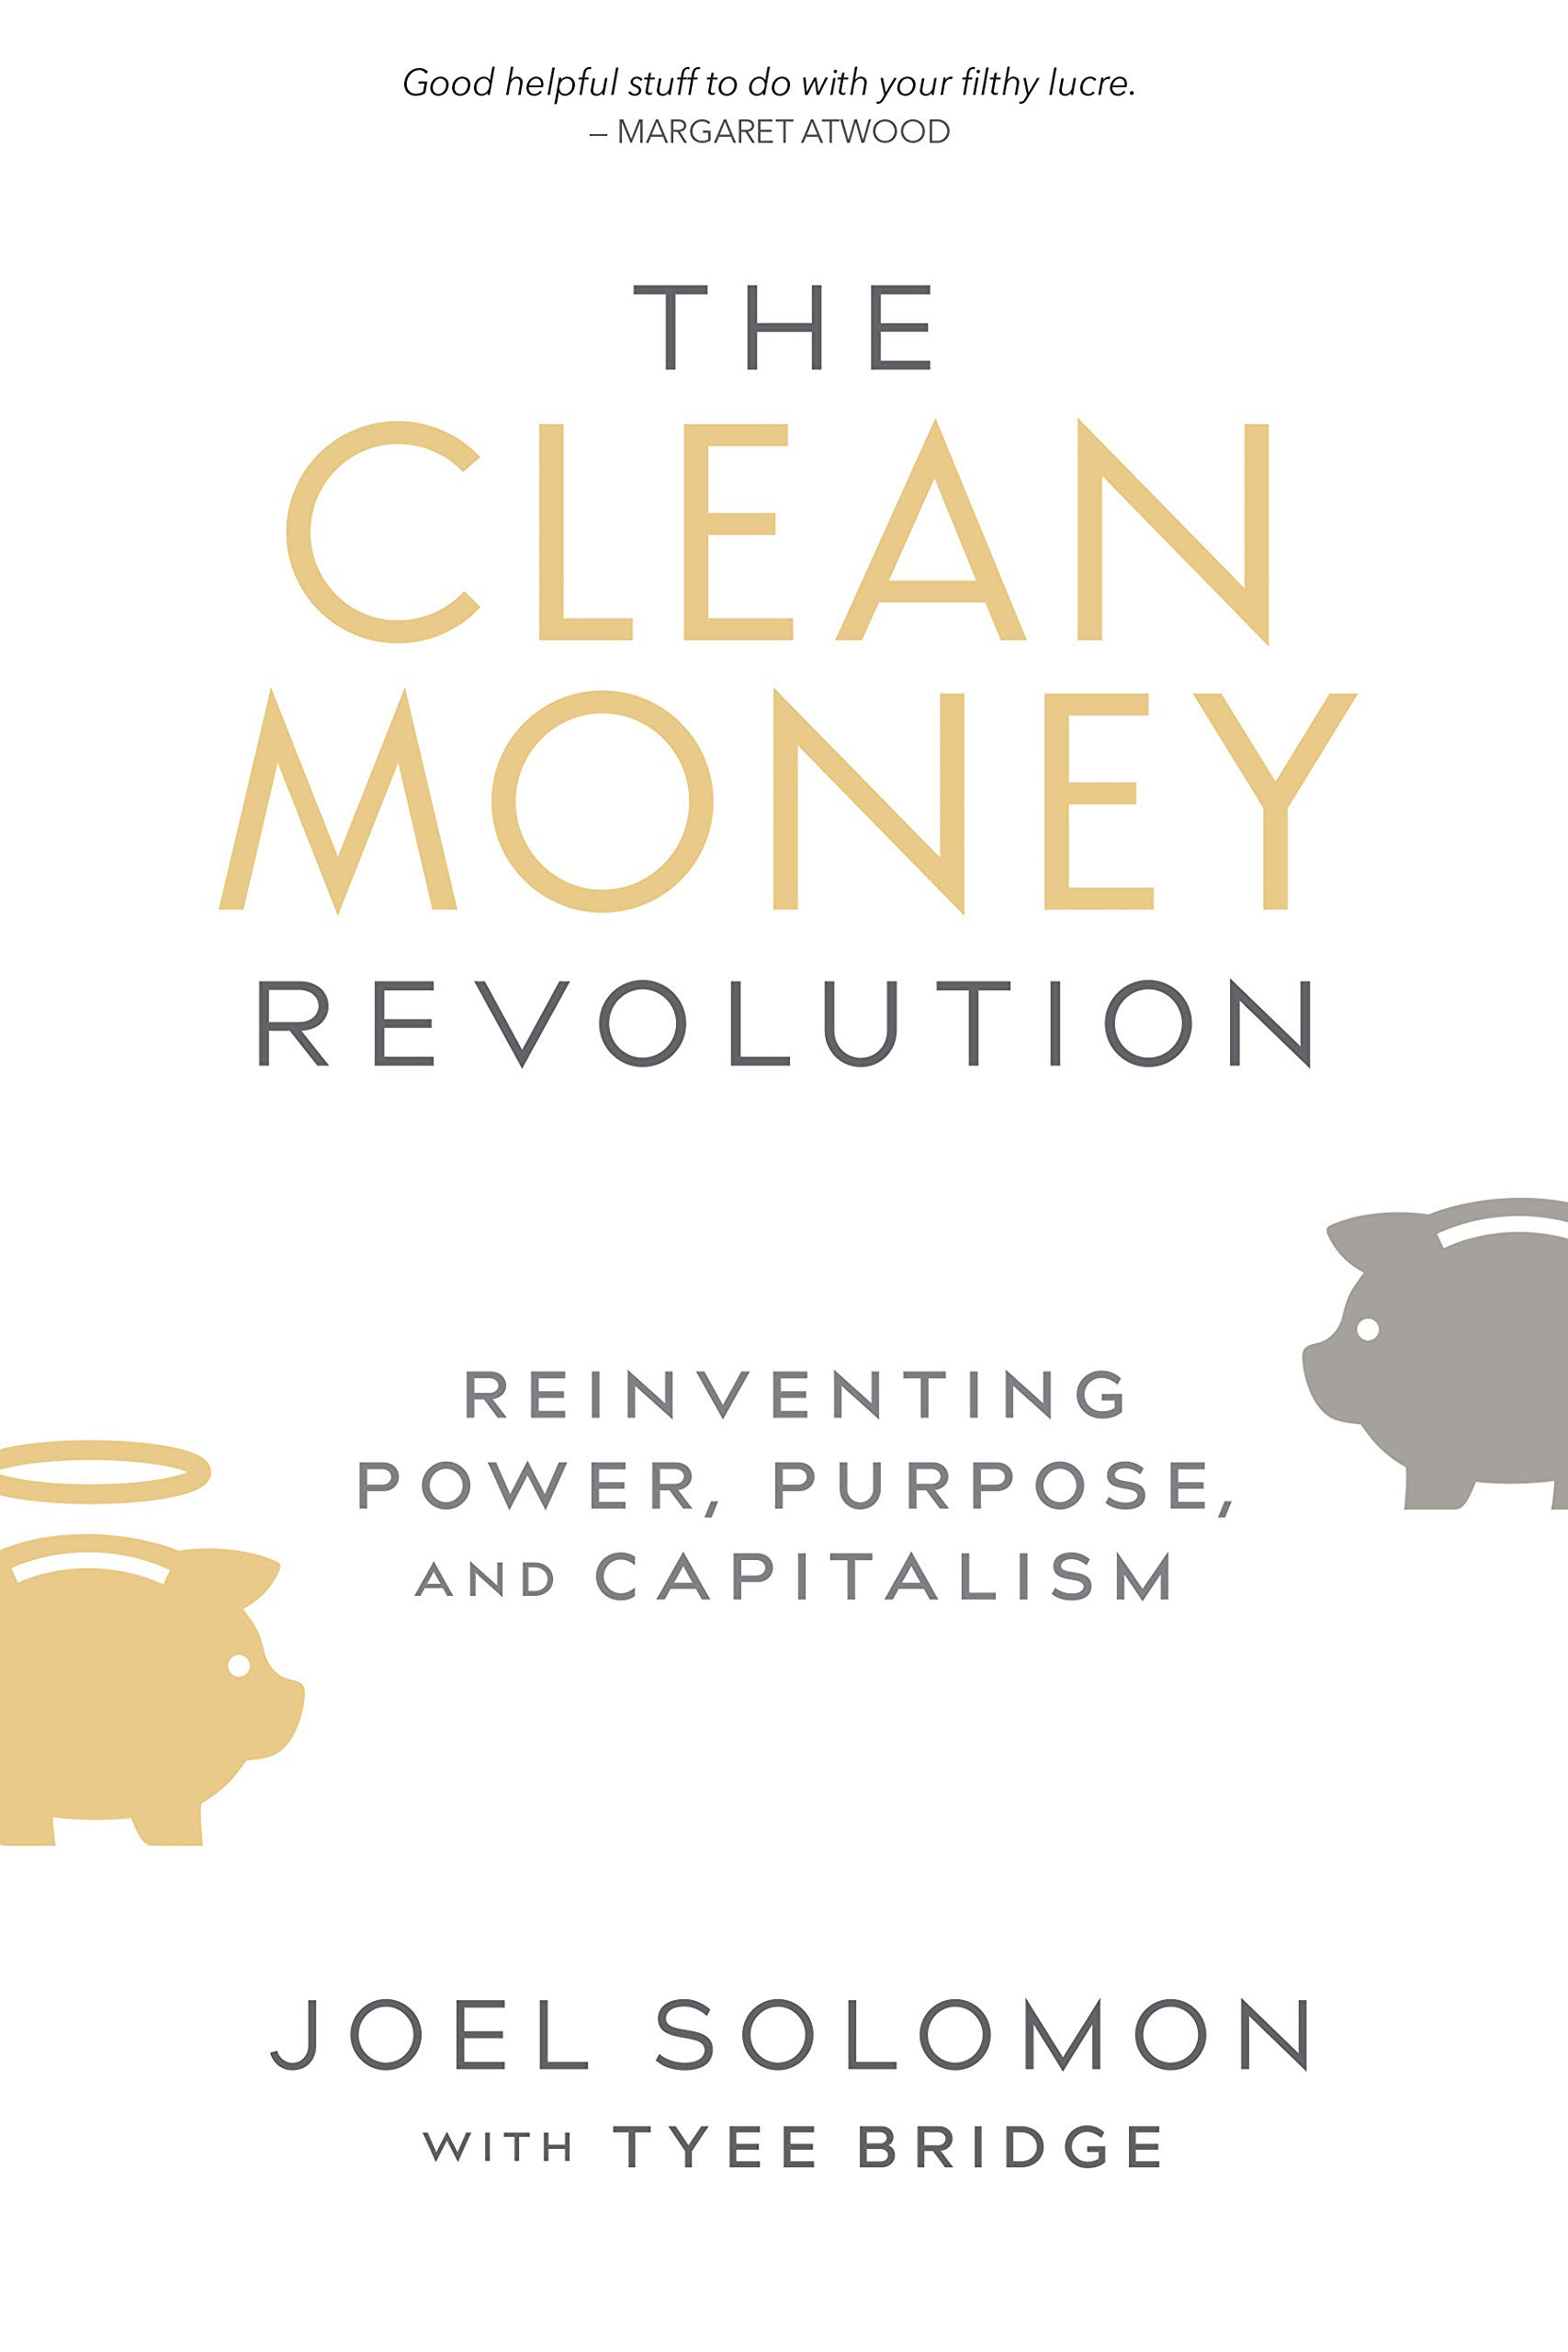 Purpose and Capitalism Reinventing Power The Clean Money Revolution